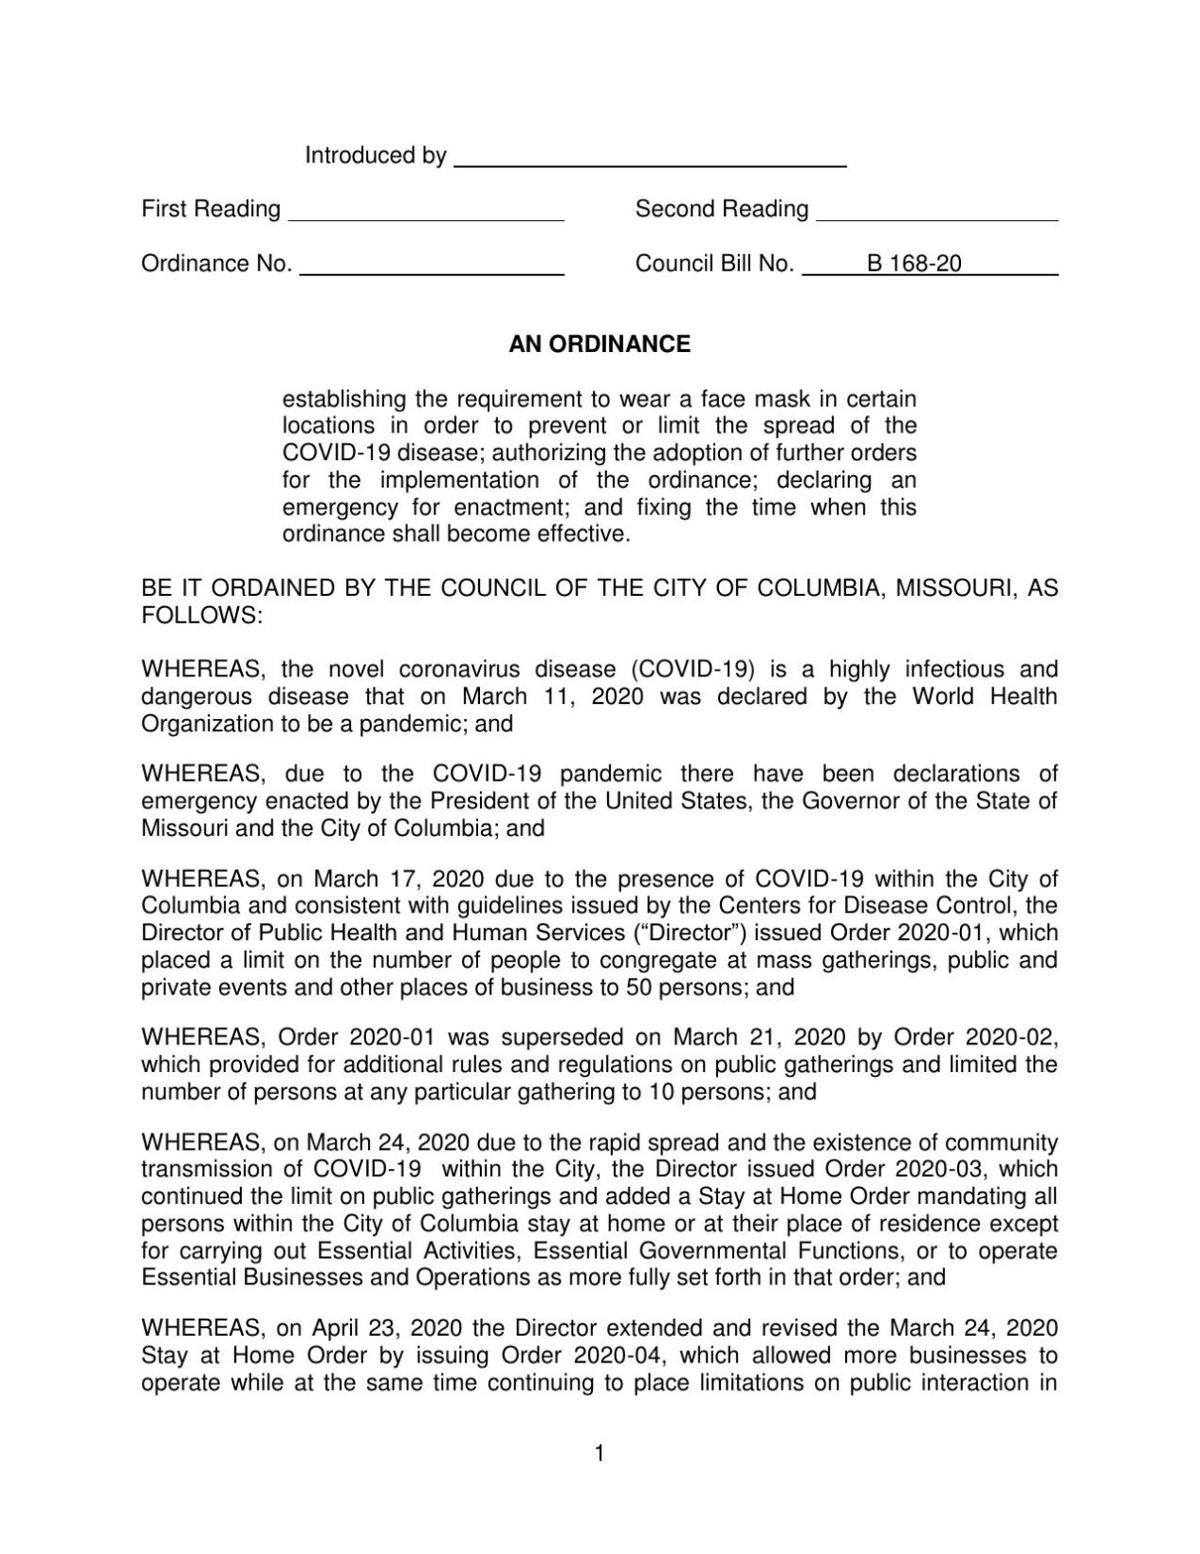 Proposed mask ordinance